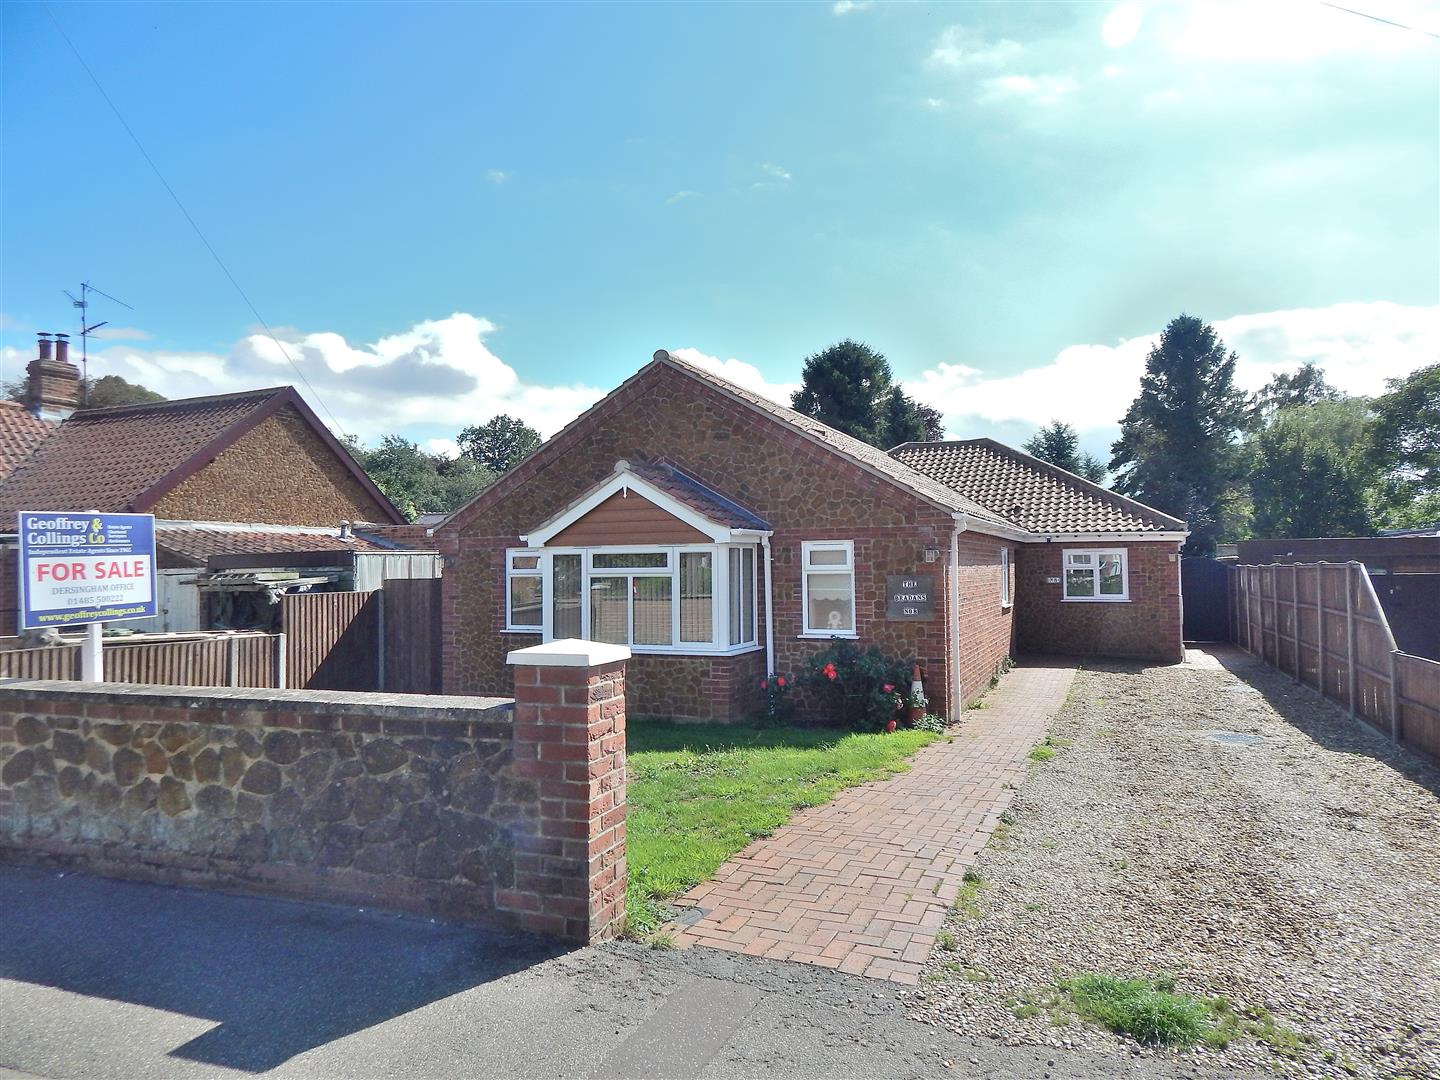 4 bed detached bungalow for sale in King's Lynn, PE31 7QL, PE31